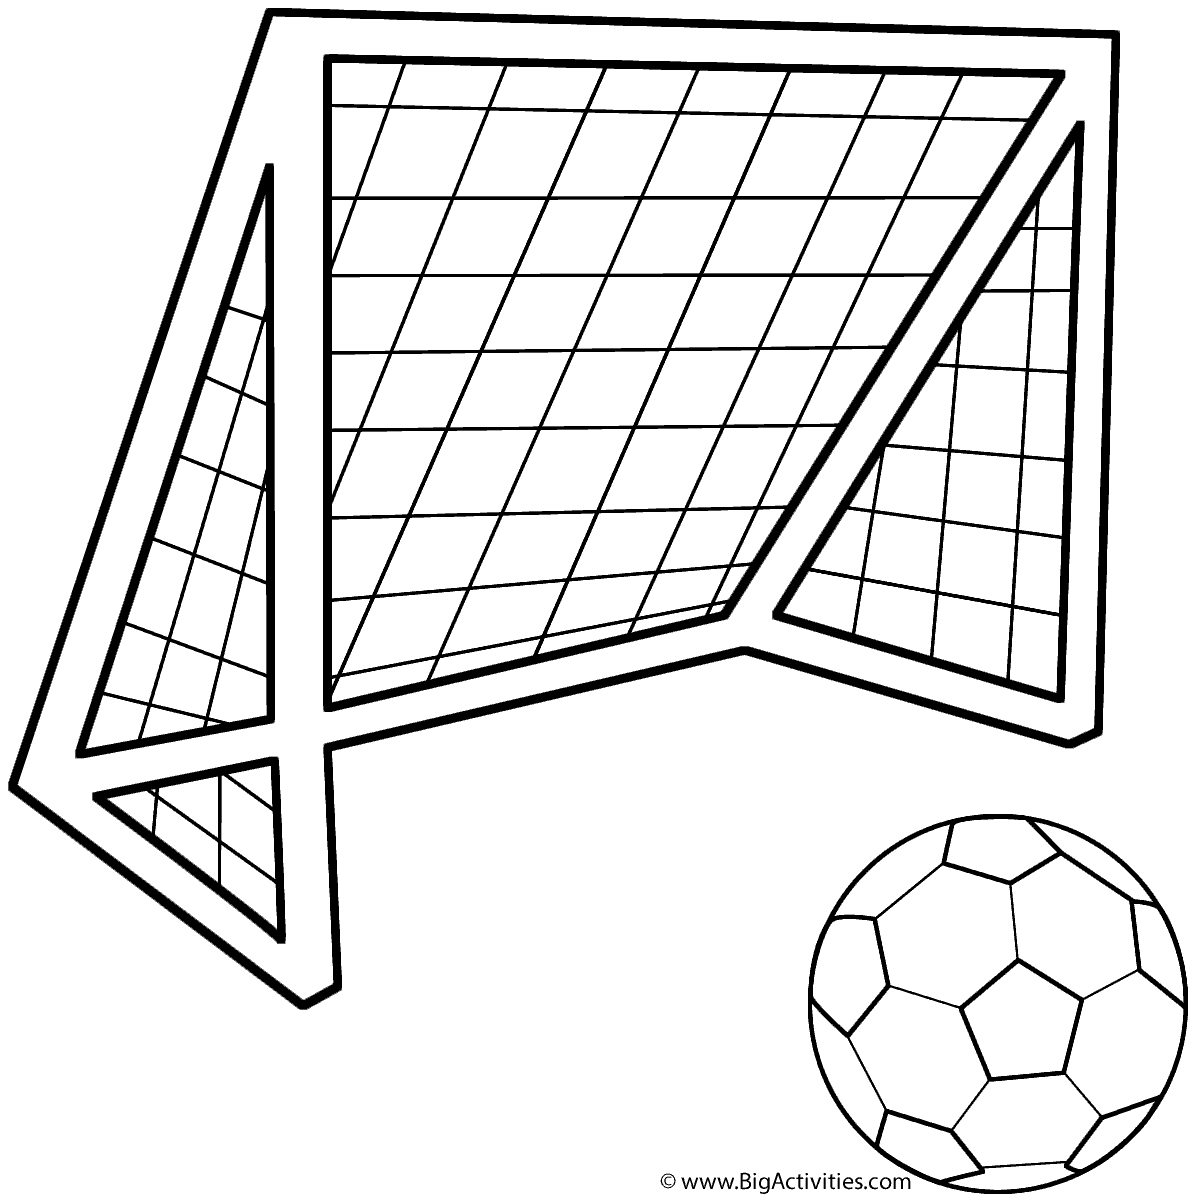 coloring page soccer a group of kids playing soccer in the school yard coloring coloring soccer page